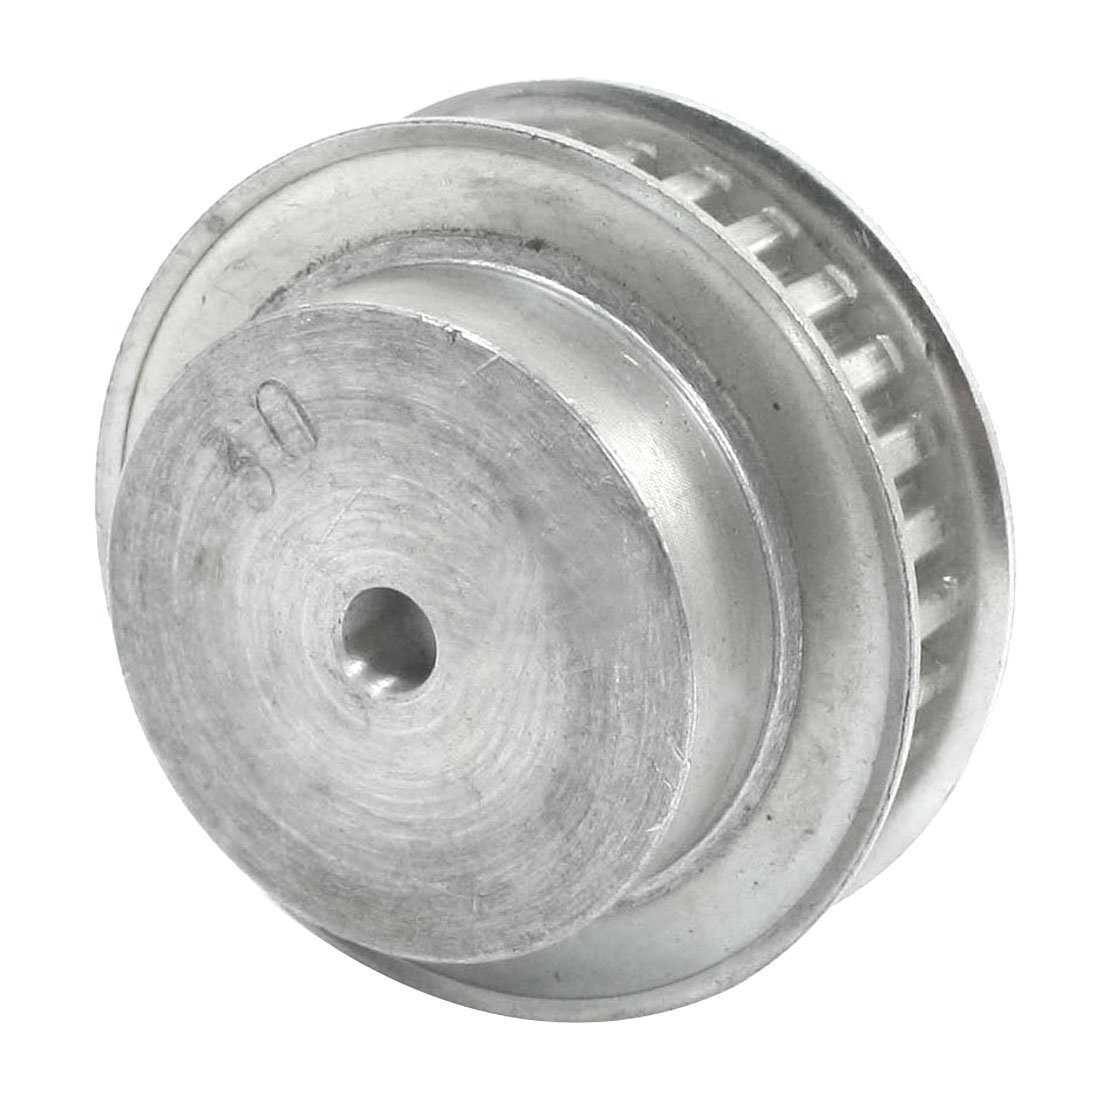 Stepper Motor 30 Teeth 6mm Bore <font><b>XL</b></font> Type Aluminum Timing <font><b>Belt</b></font> <font><b>Pulley</b></font> image